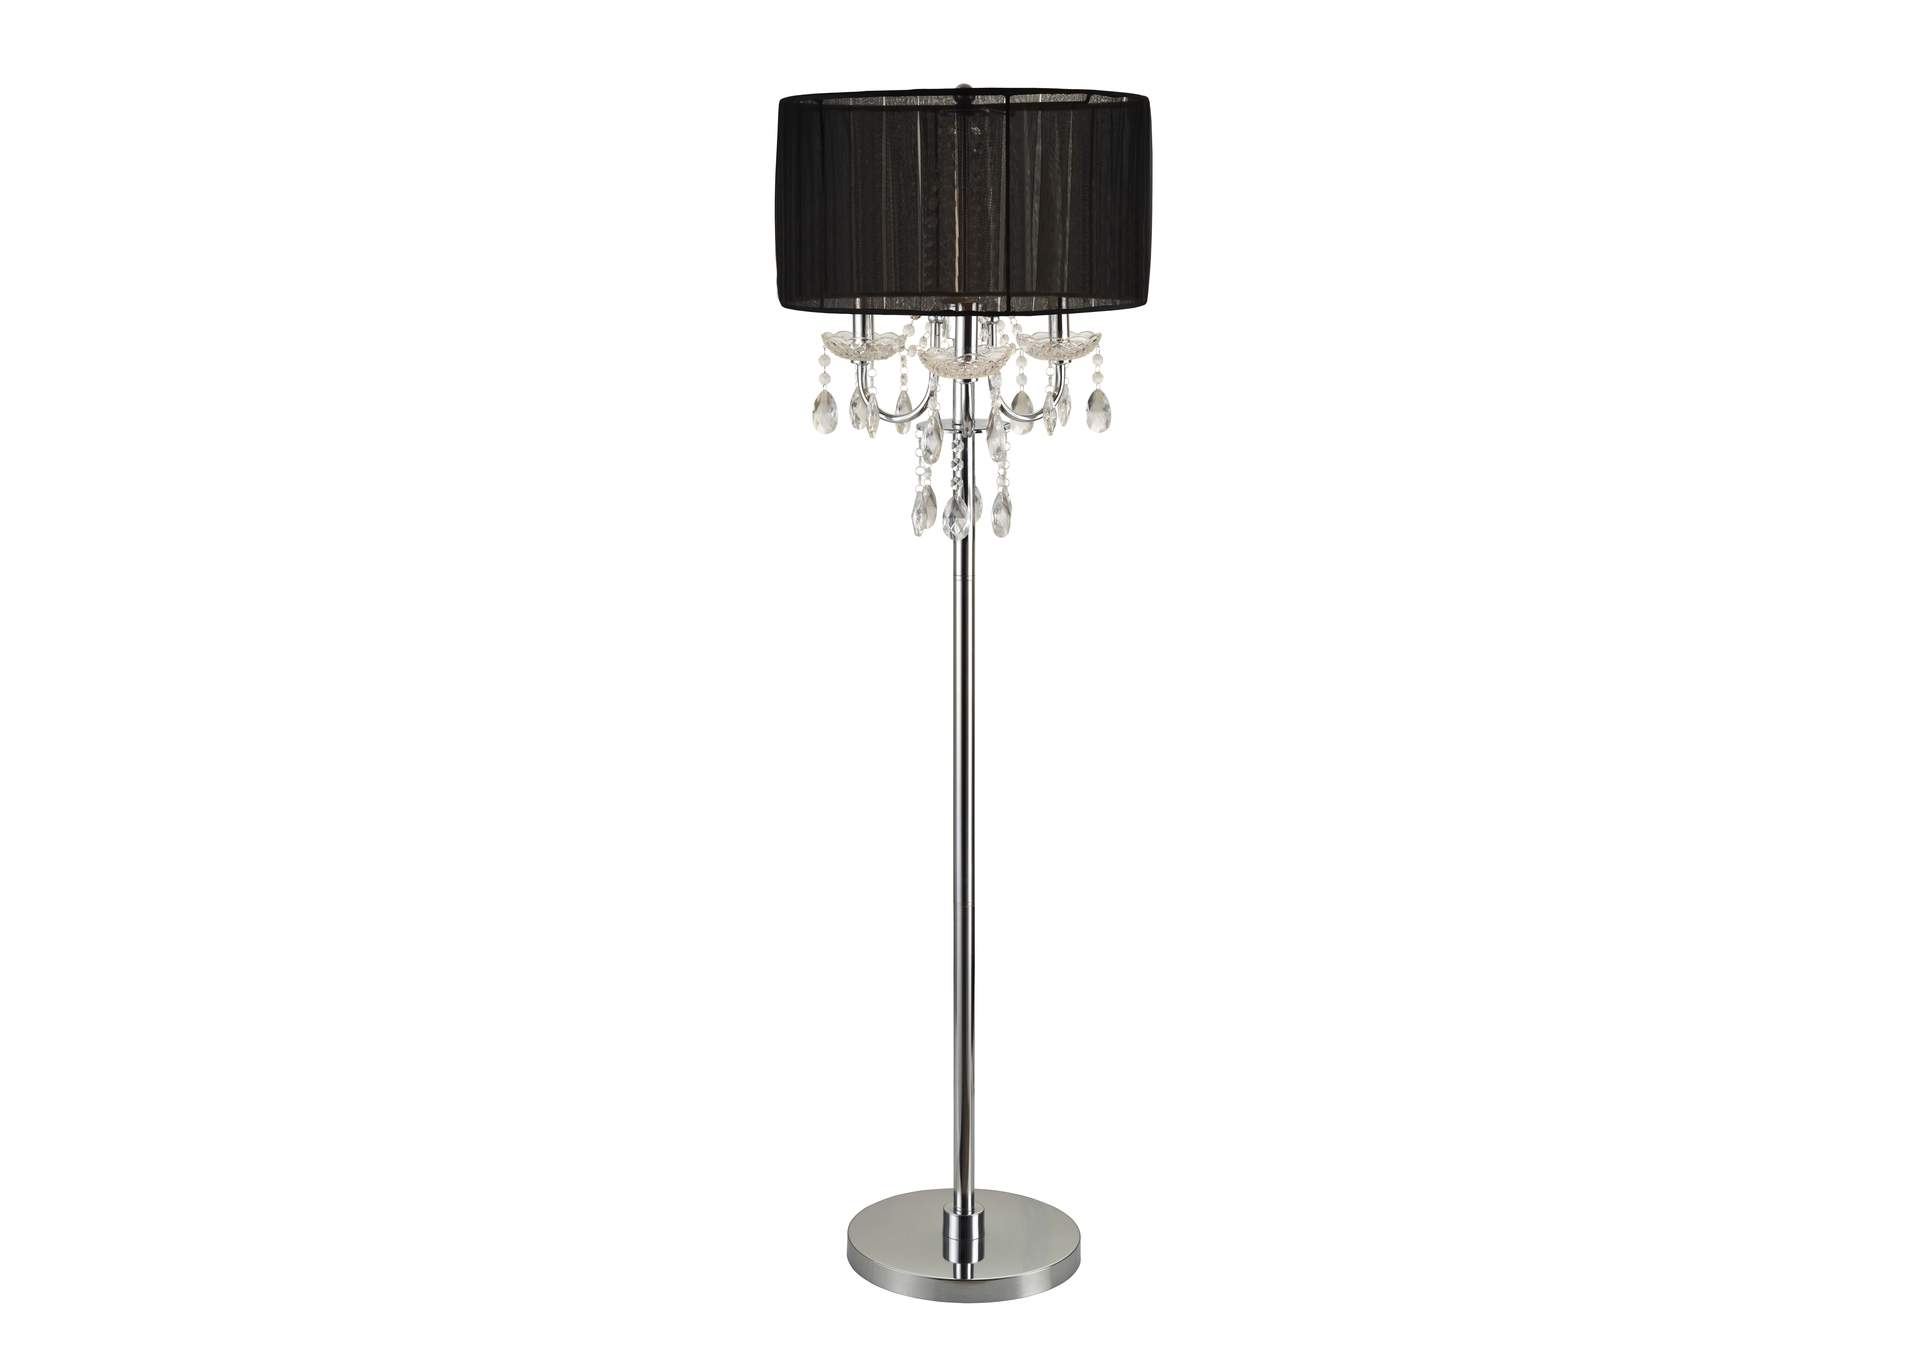 Black Chandelier Floor Lamp,Crown Mark